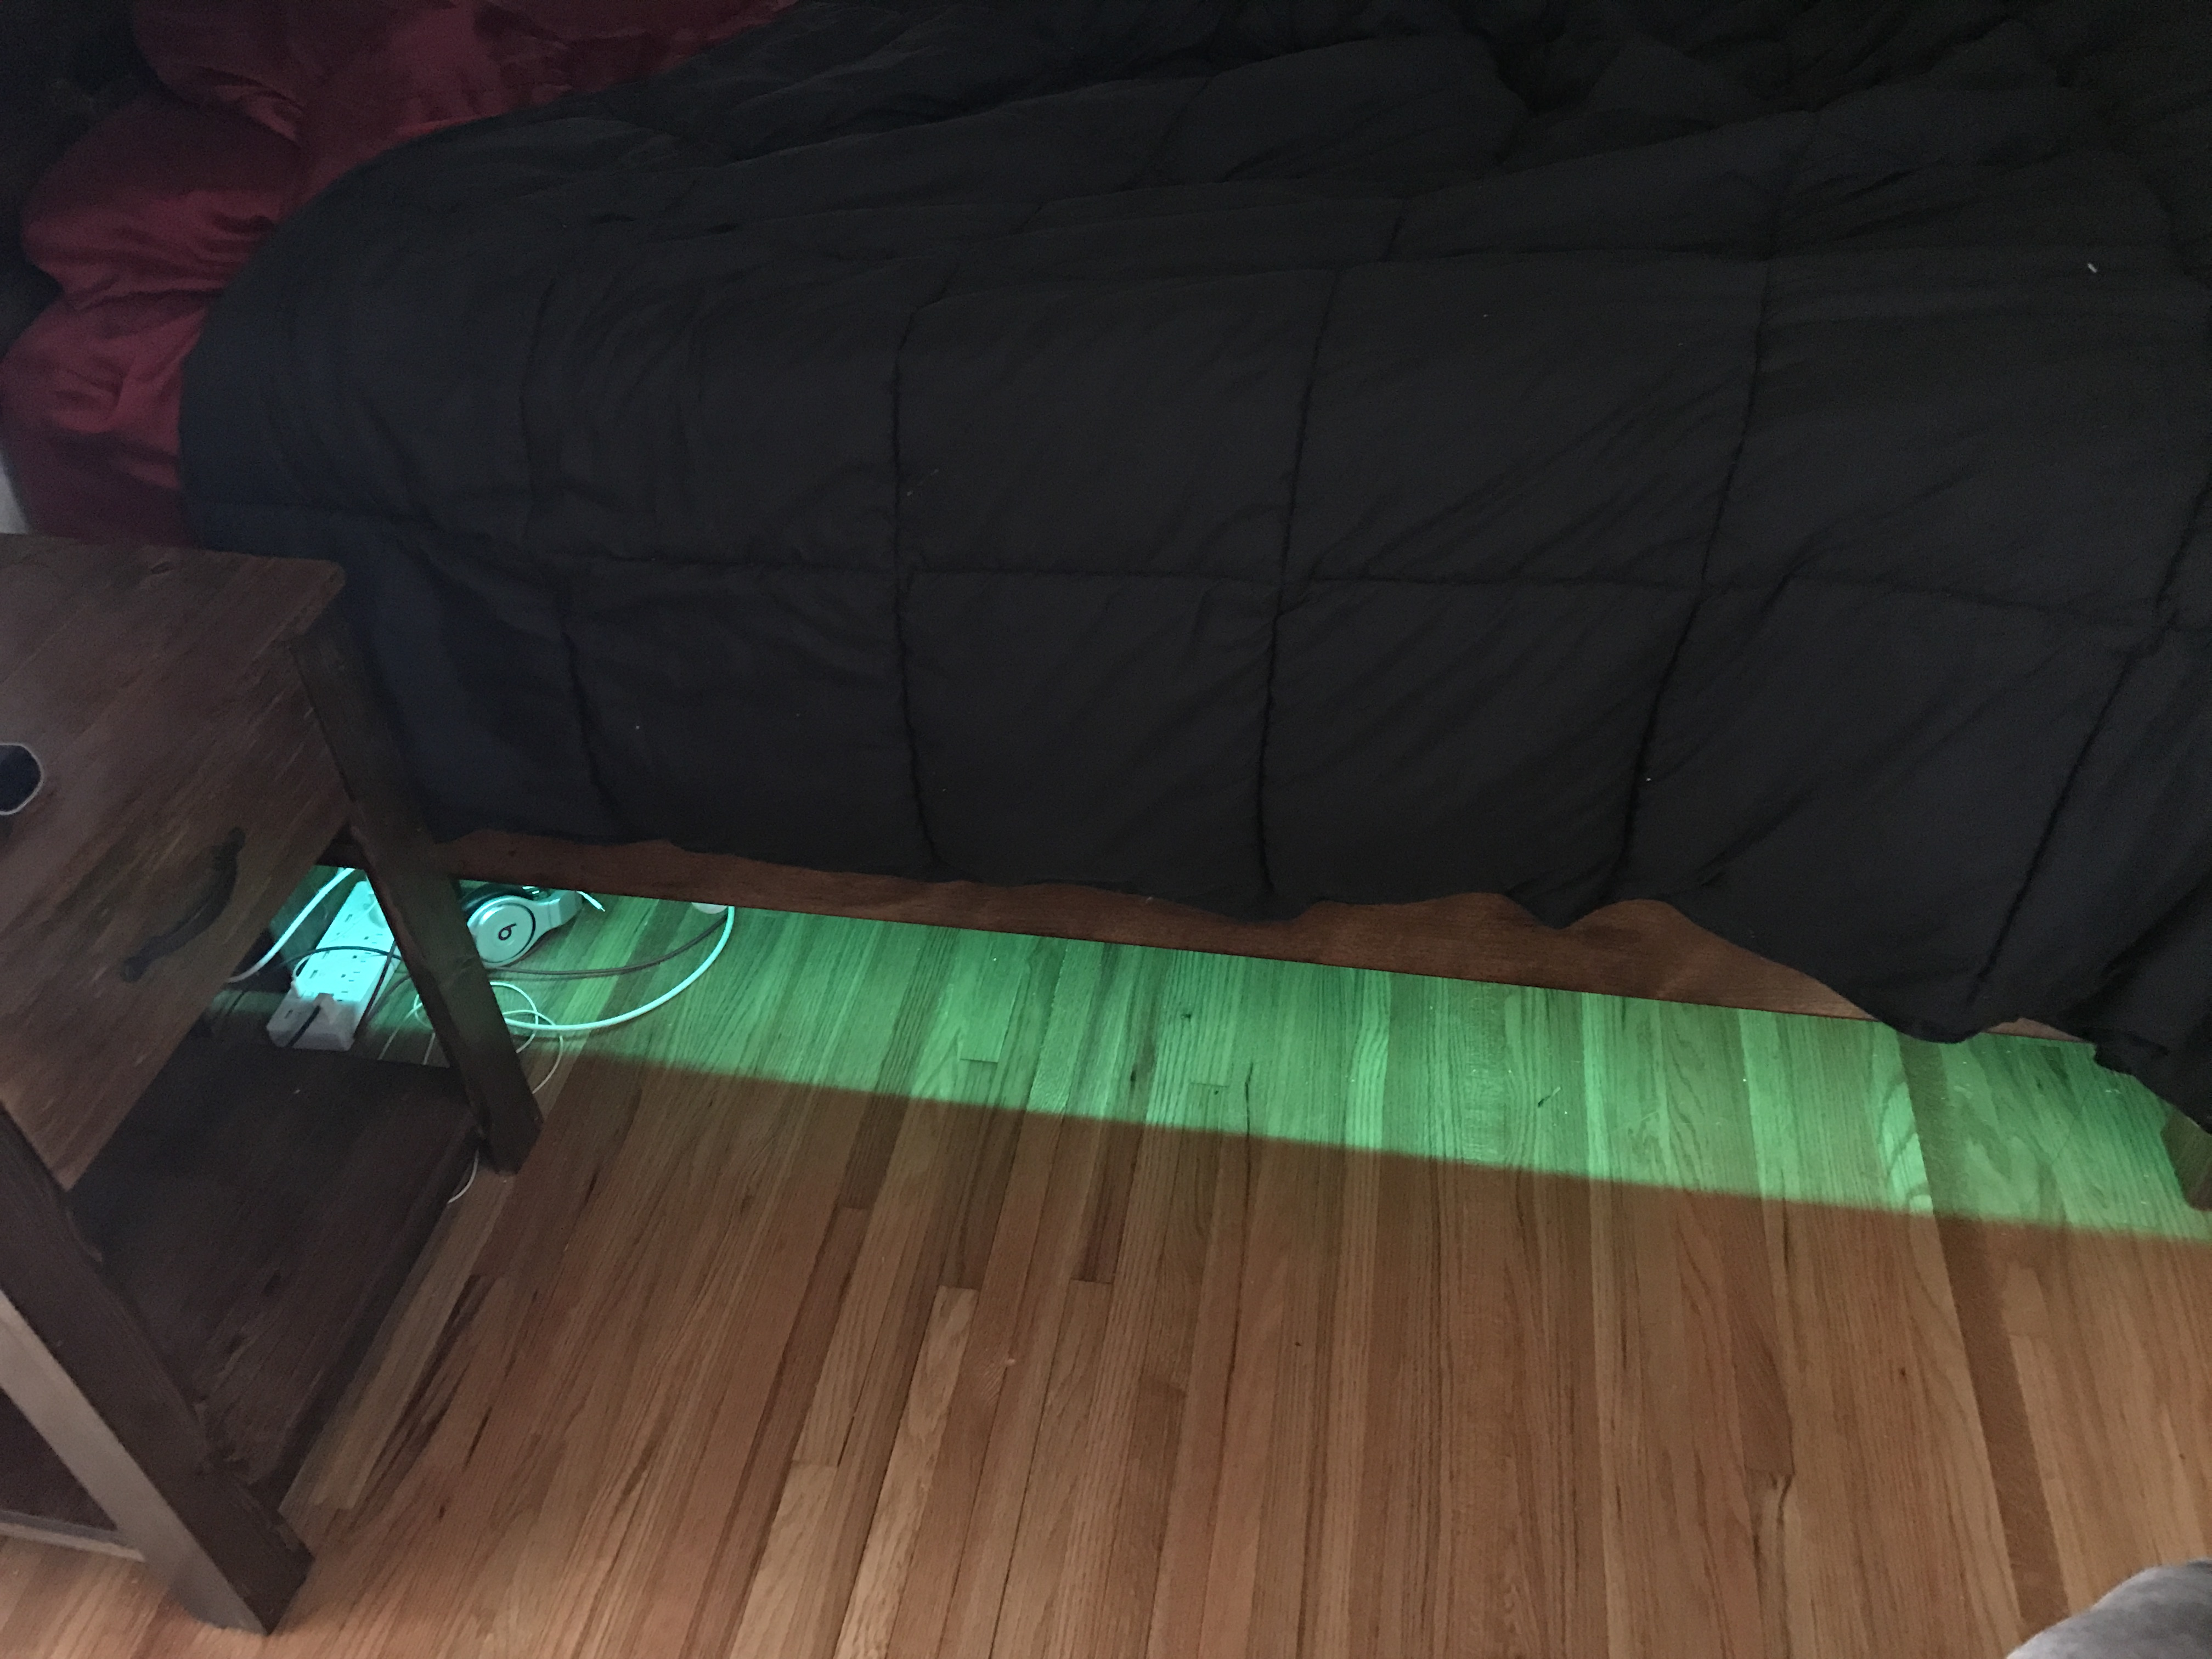 under bed led lighting. This Way, When I Walk Into My Room Or Get Out Of Bed It Is Dark, These Will Light Up And Provide A Nice Ambient Glow That Make Easier To See. Under Led Lighting Y